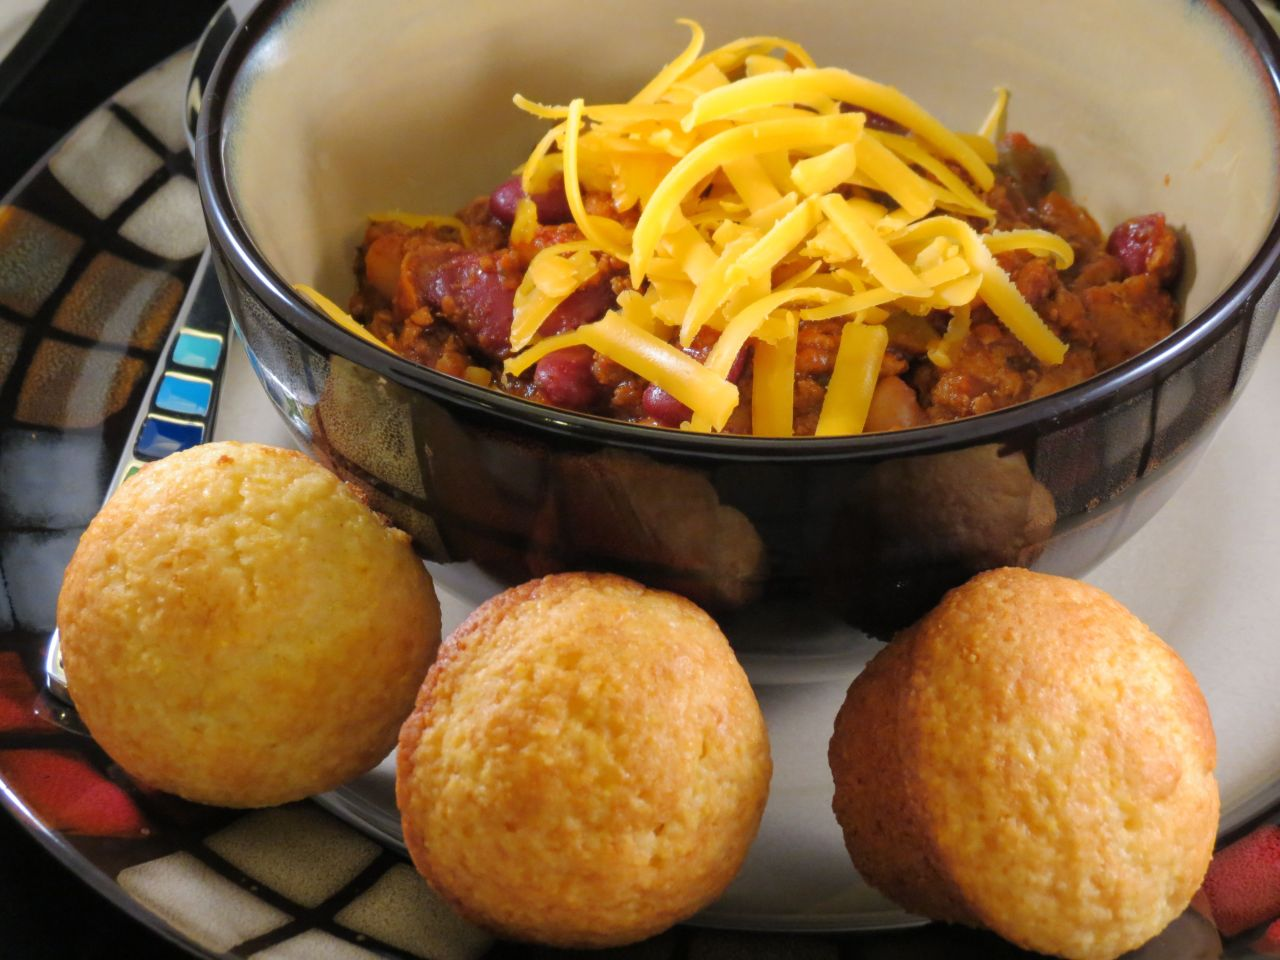 Superbowl Chili with cheddar cheese and cornbread